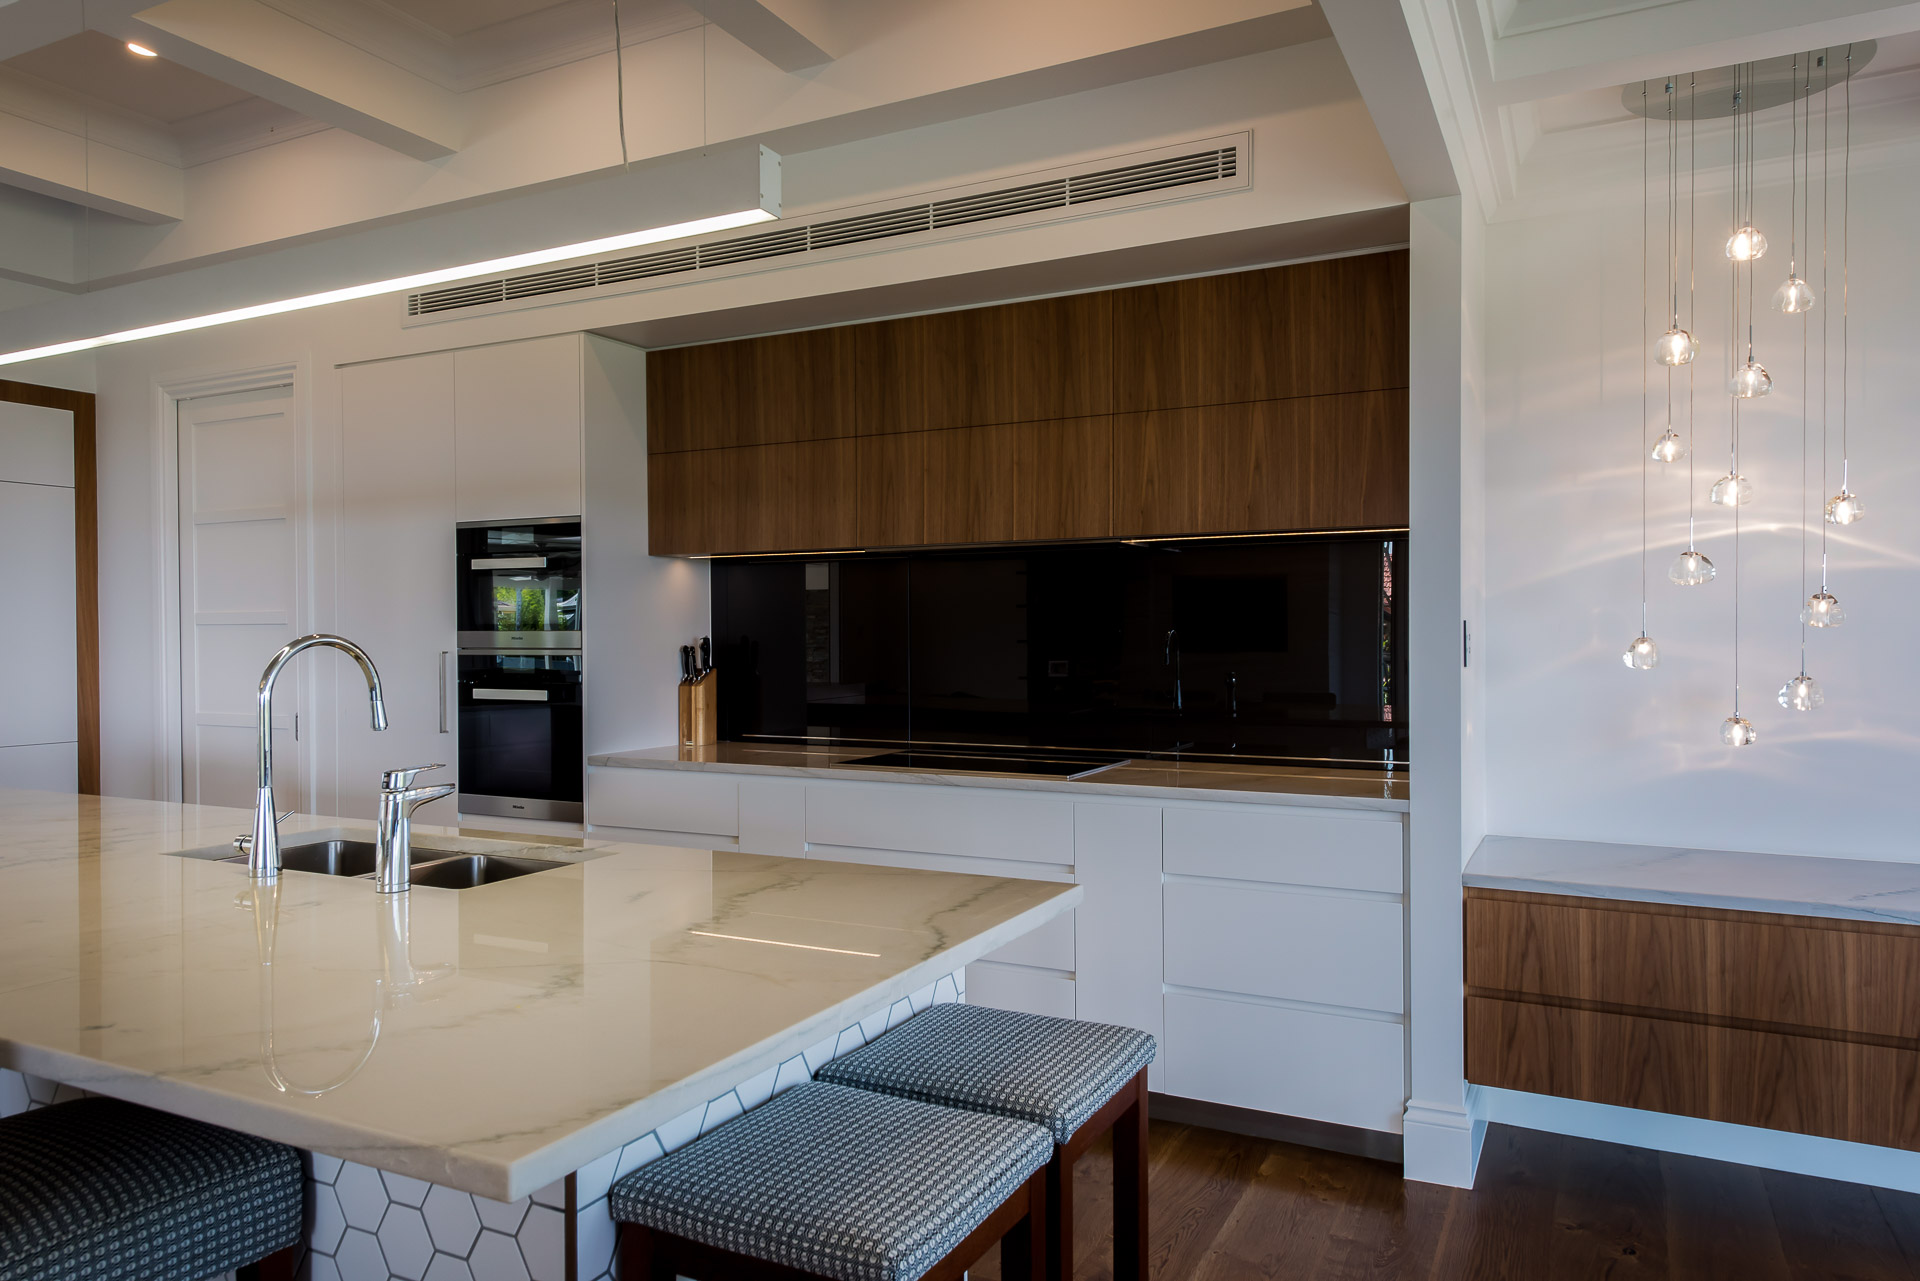 kitchen, black glass splashback, lift up splashback, white granite, miele ovens, minka joinery